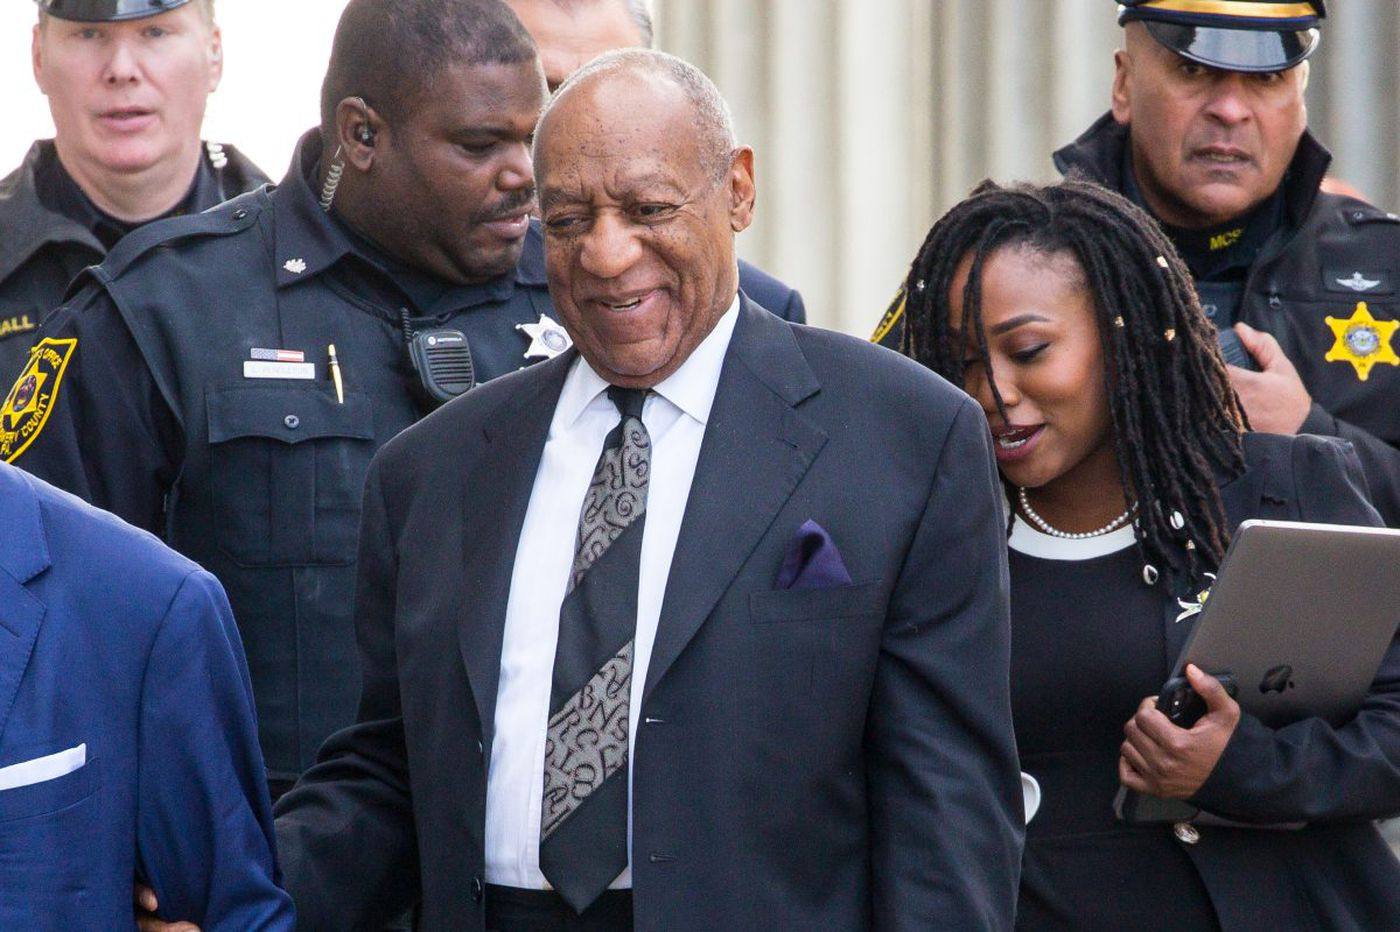 Trauma therapist on Cosby retrial: 19 other accusers should be allowed to share their stories | Opinion